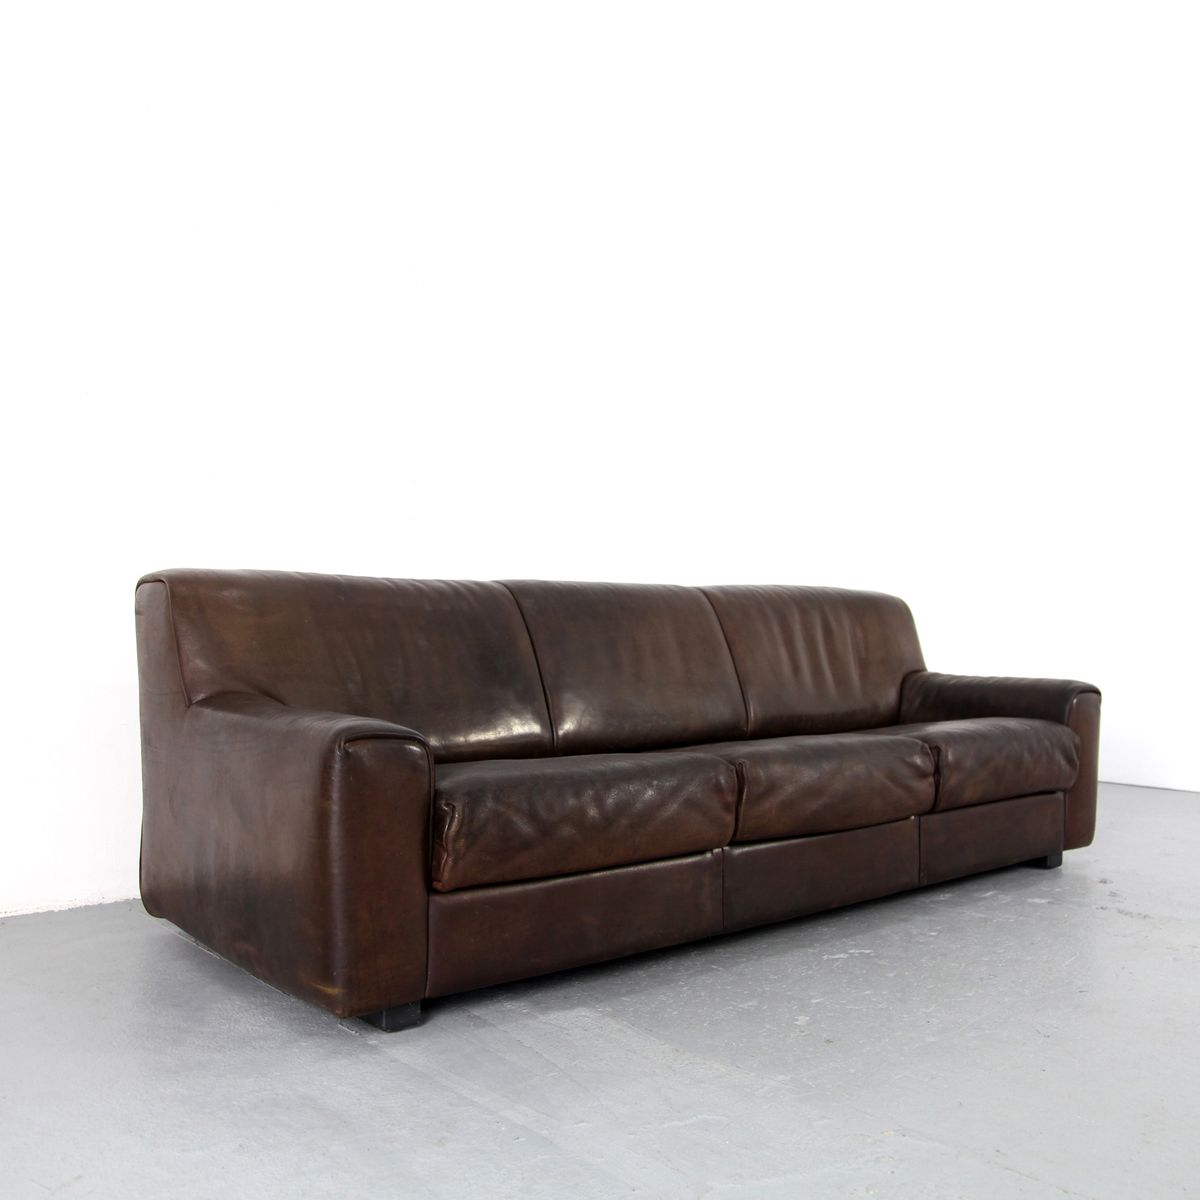 brown leather sofa from de sede 1960s for sale at pamono. Black Bedroom Furniture Sets. Home Design Ideas